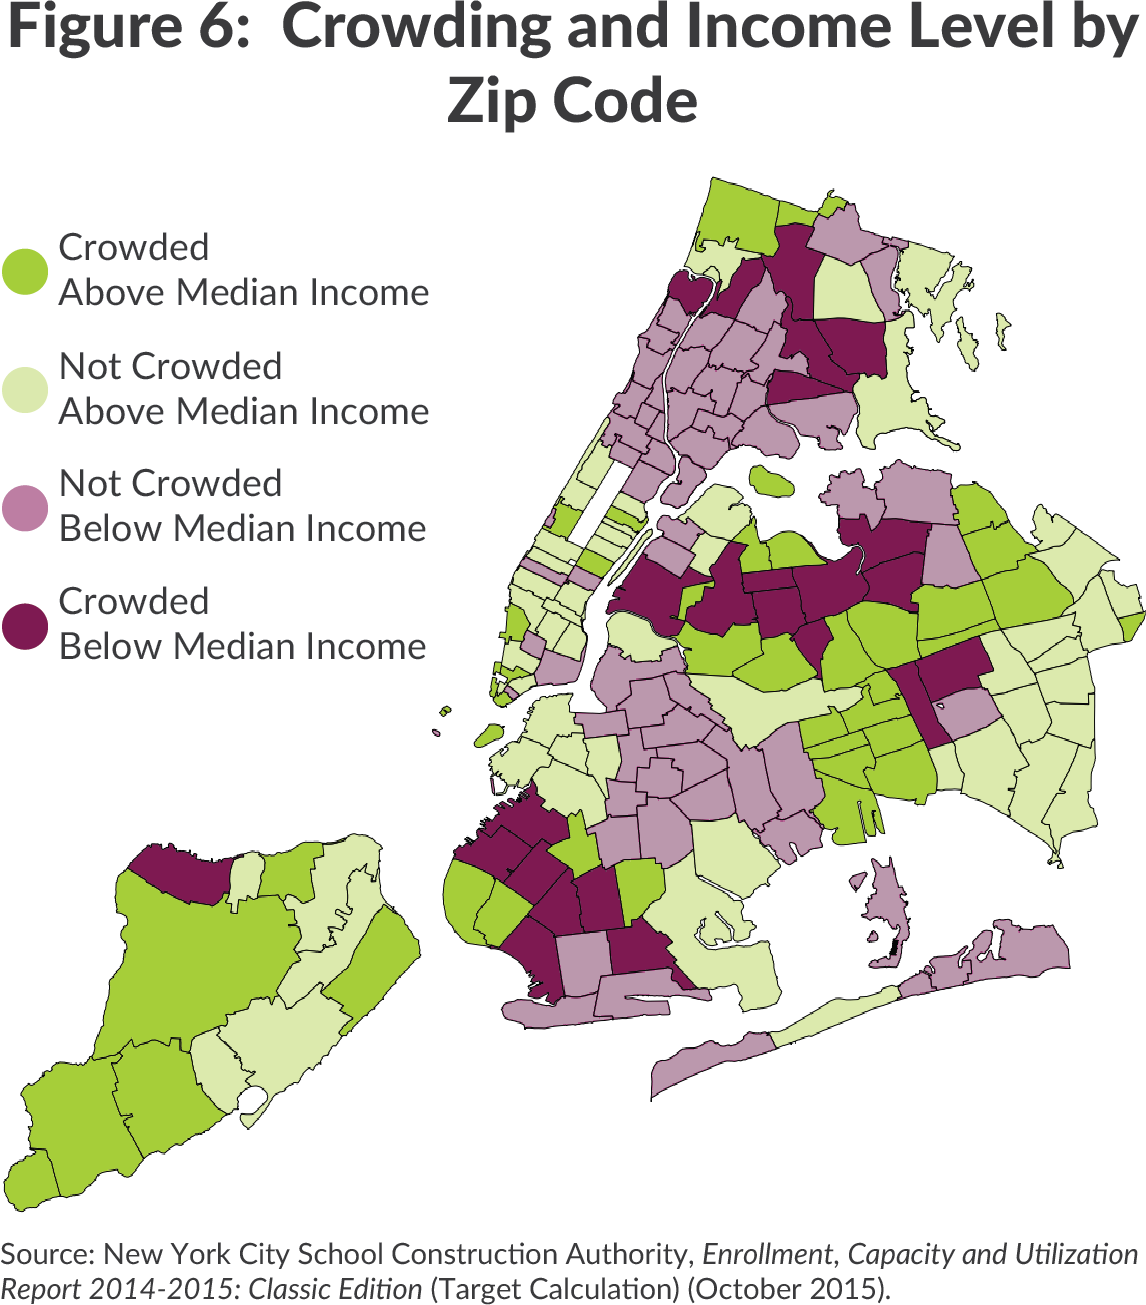 5 Myths About Crowding in New York City | CBCNY on map of new york city police precincts, map of new york city schools, map of new york city hotels, map of new york city council districts, map with zip and city of brooklyn, map of new york city county, brooklyn new york zip codes, map of new york city weather, map of new york city street names, map of new york city state, nyc zip codes,